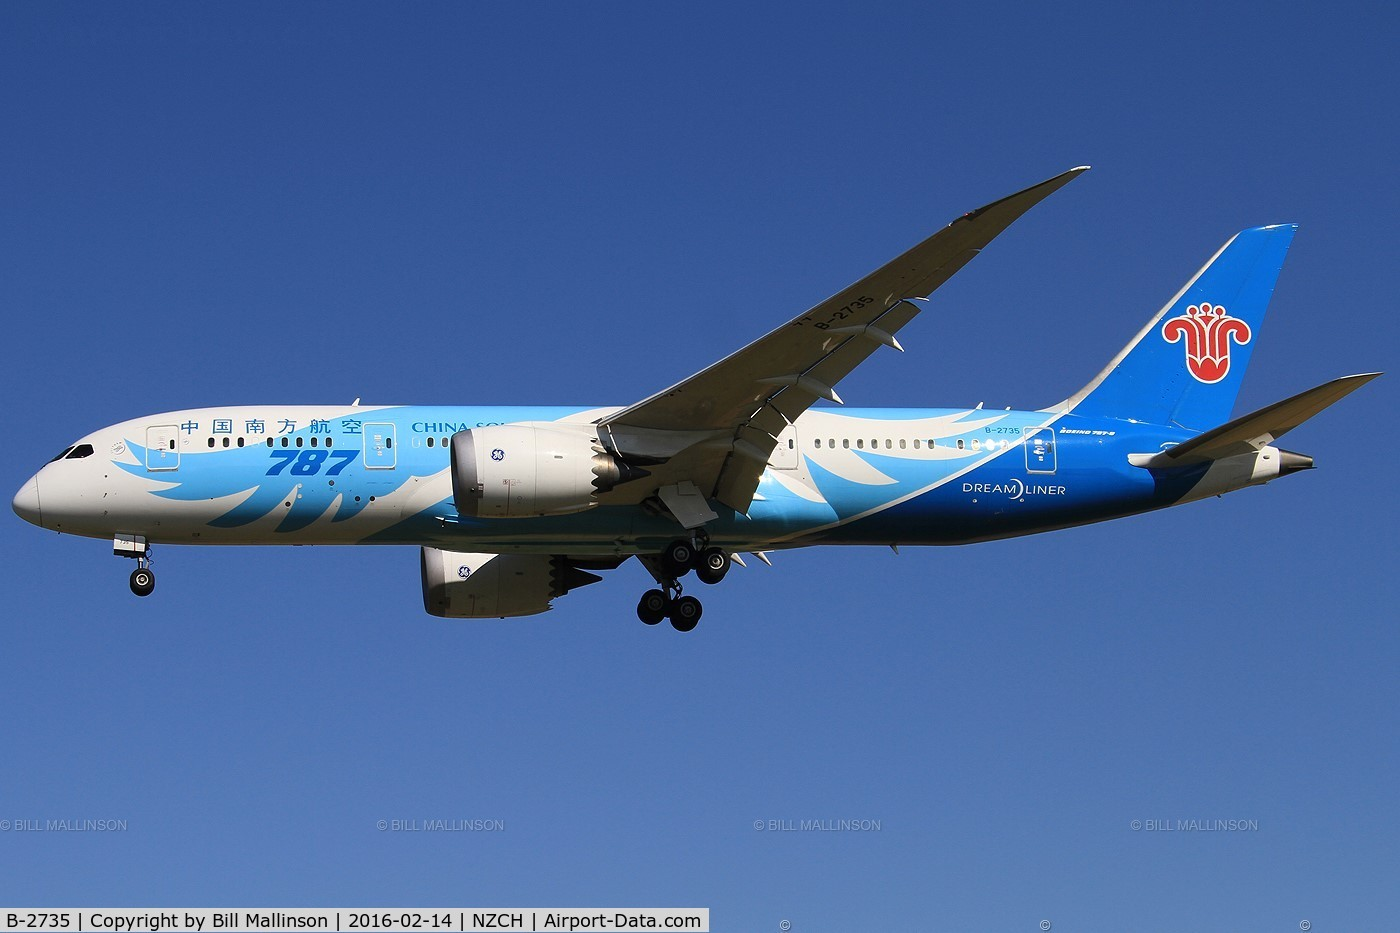 B-2735, 2013 Boeing 787-8 Dreamliner C/N 34928, CZ617 direct from CAN